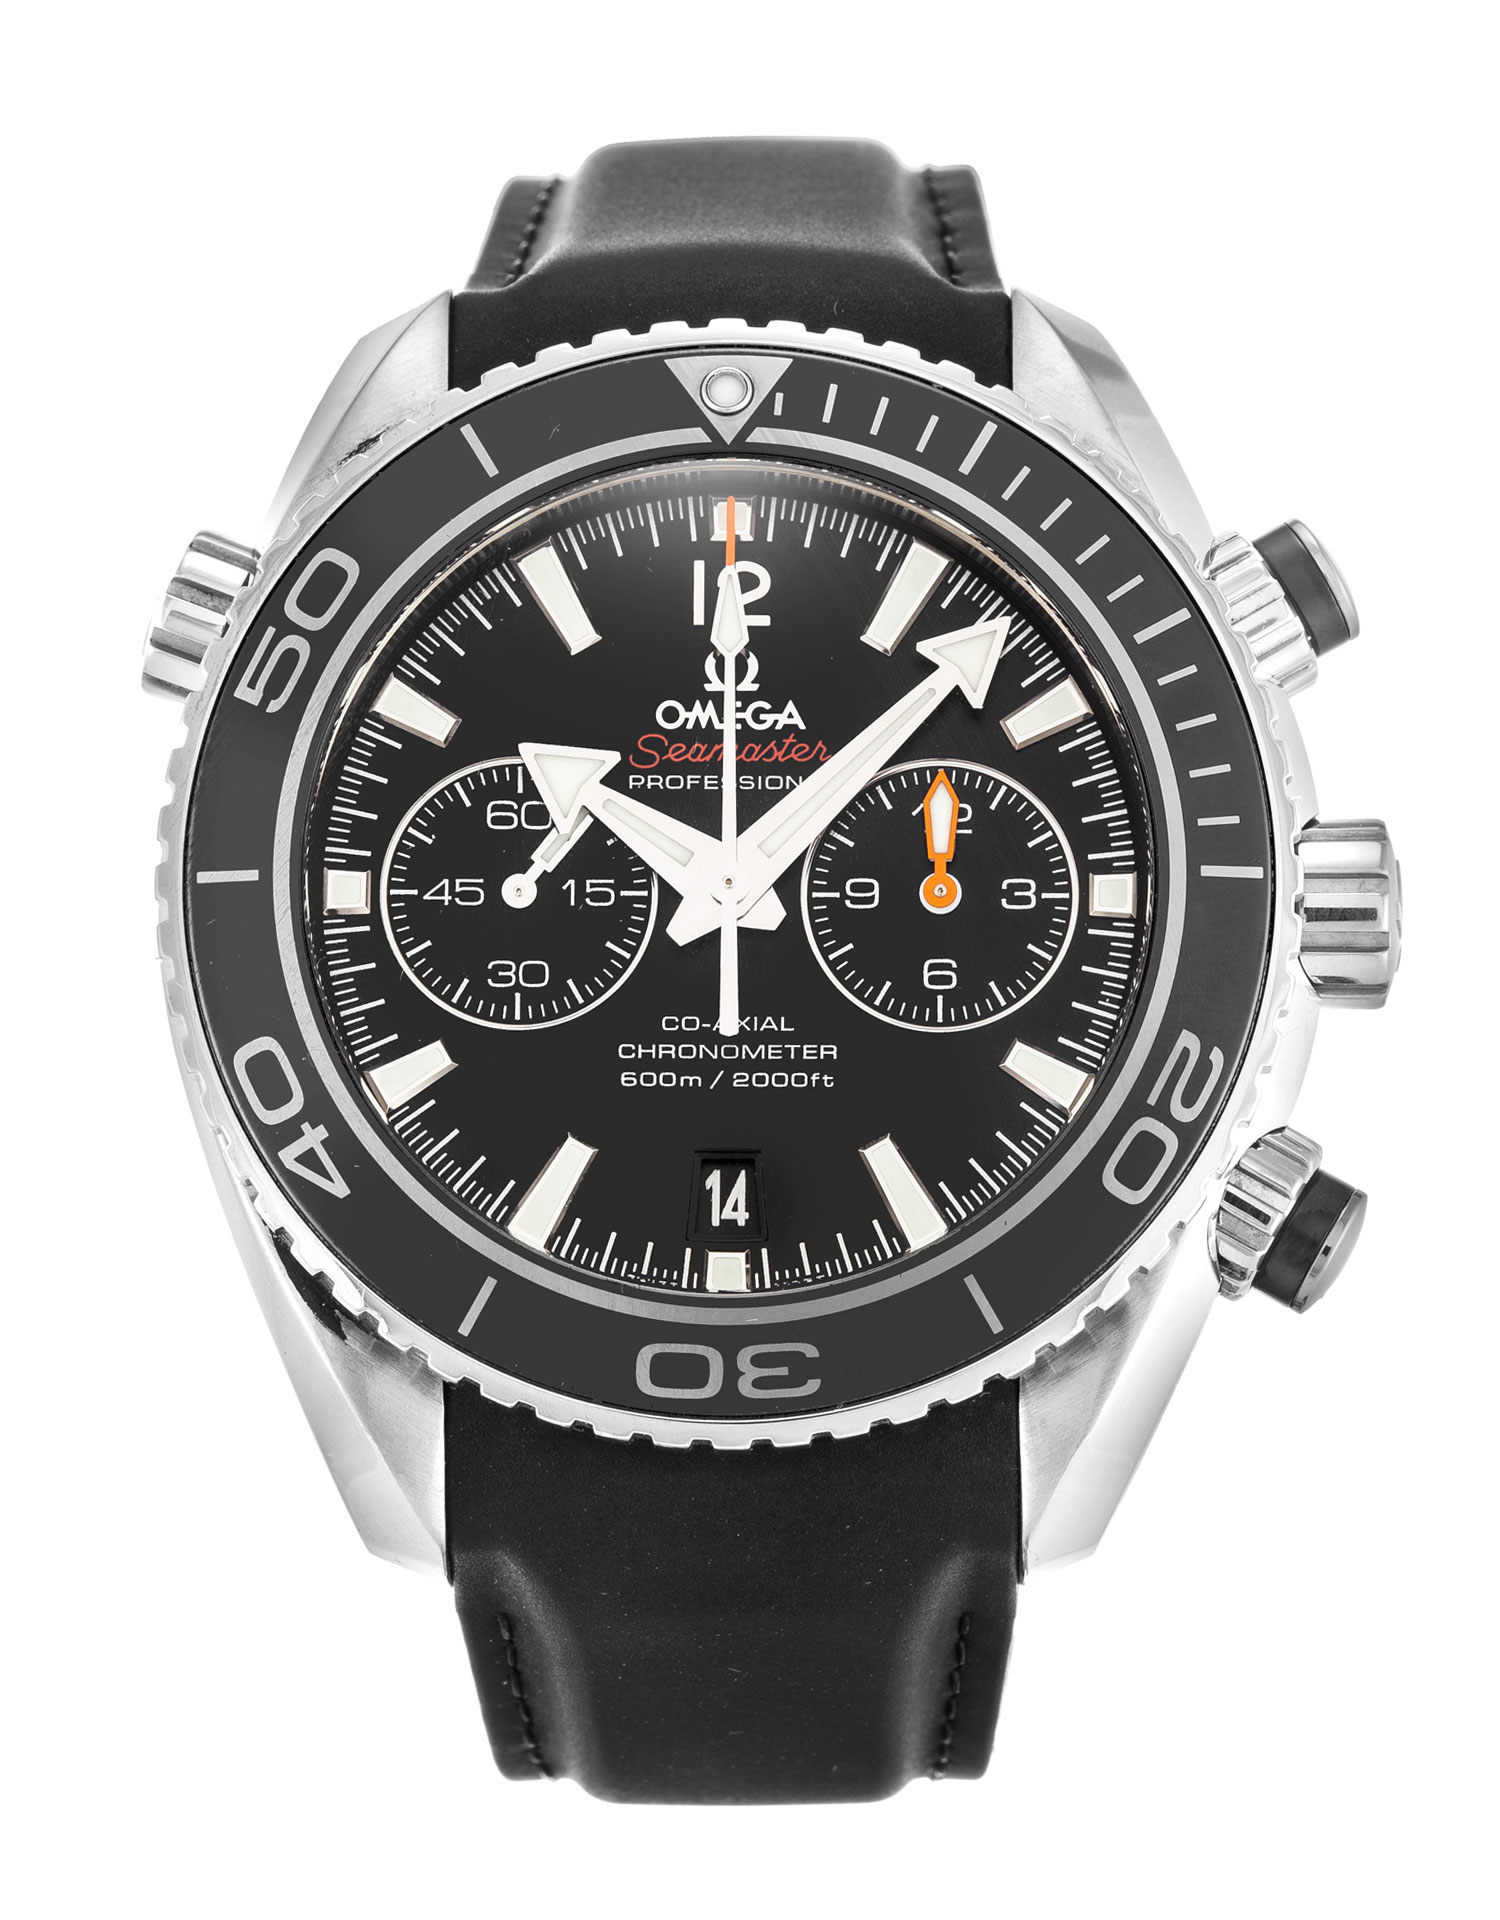 Omega Planet Ocean 232.32.46.51.01.003 Mens 45.5 Mm Steel Case Automatic Movement – iapac.to